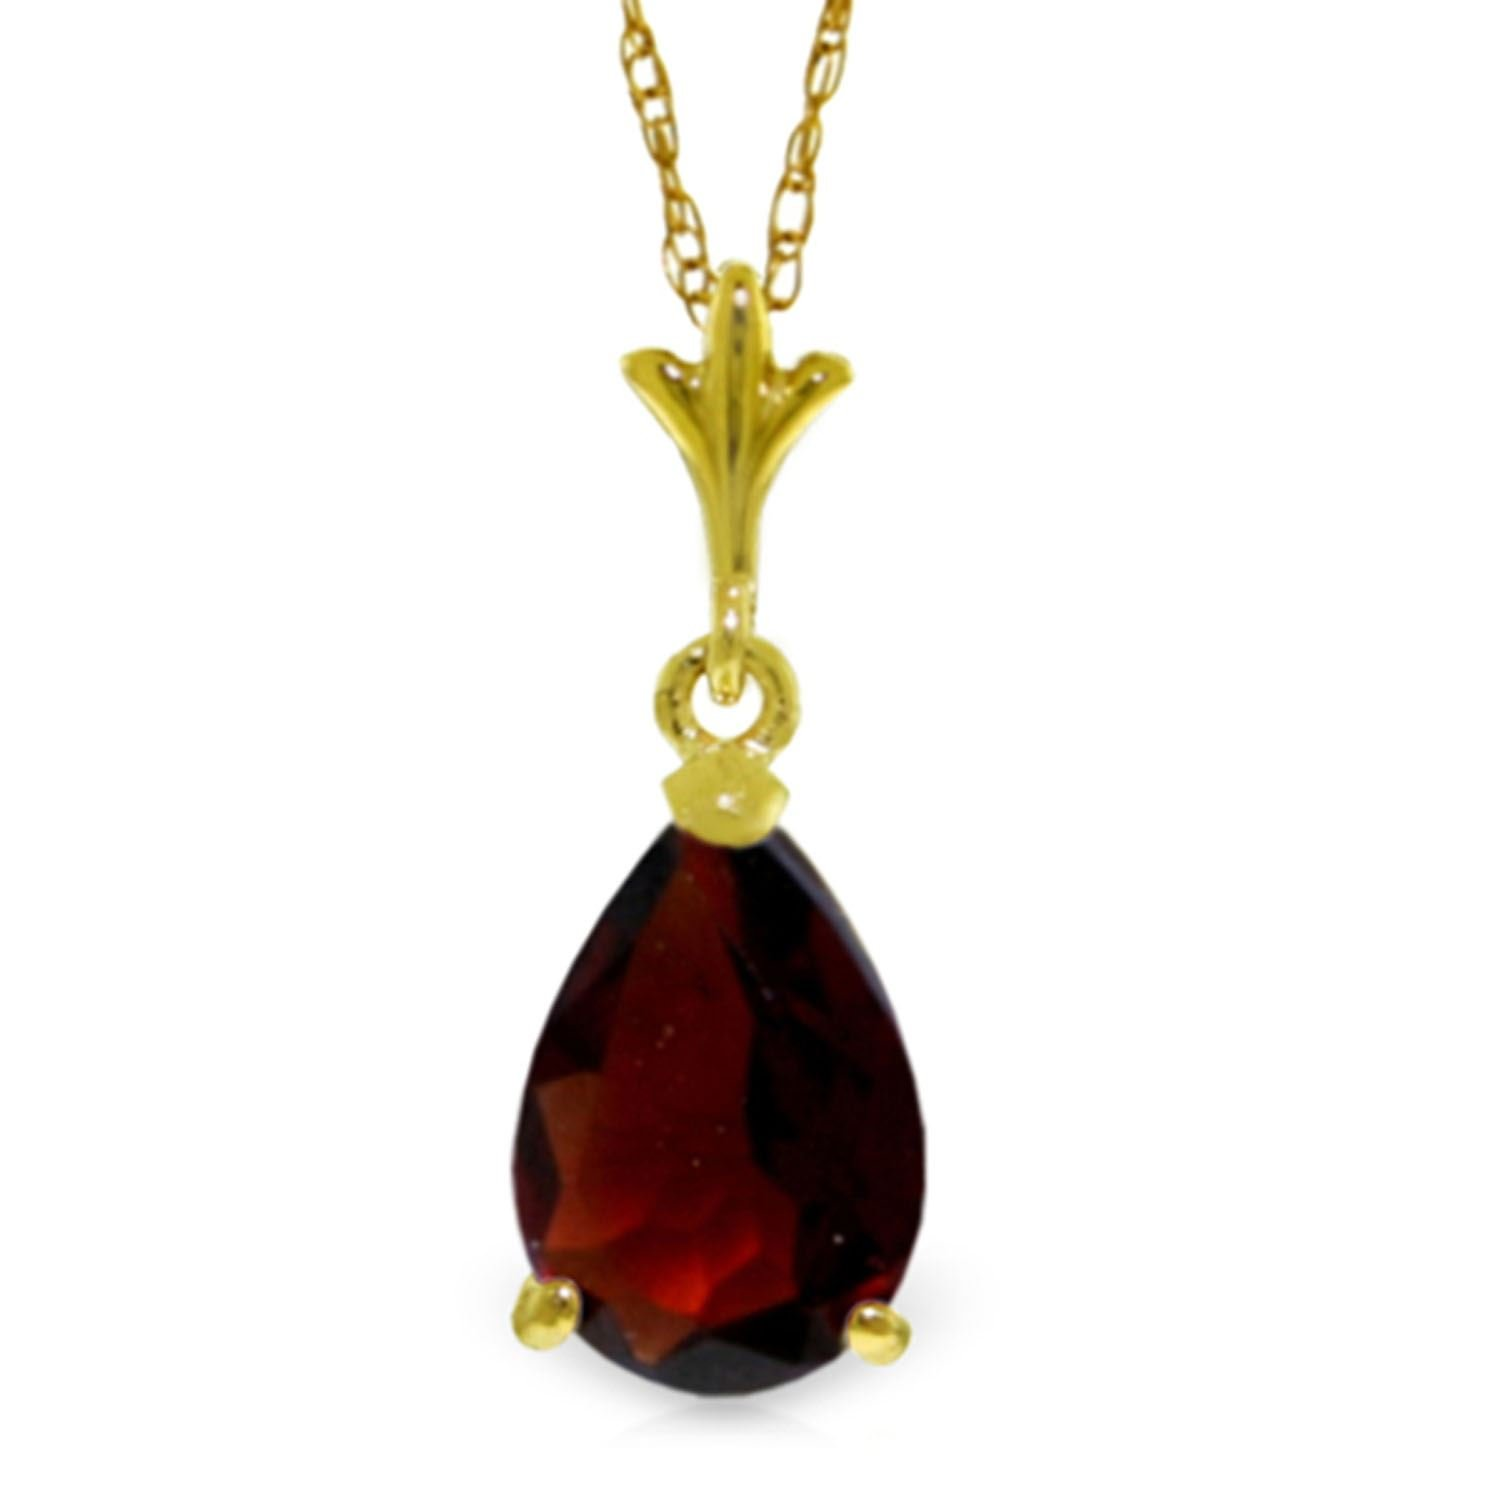 ALARRI 1.5 Carat 14K Solid Gold Ode To Love Garnet Necklace with 18 Inch Chain Length